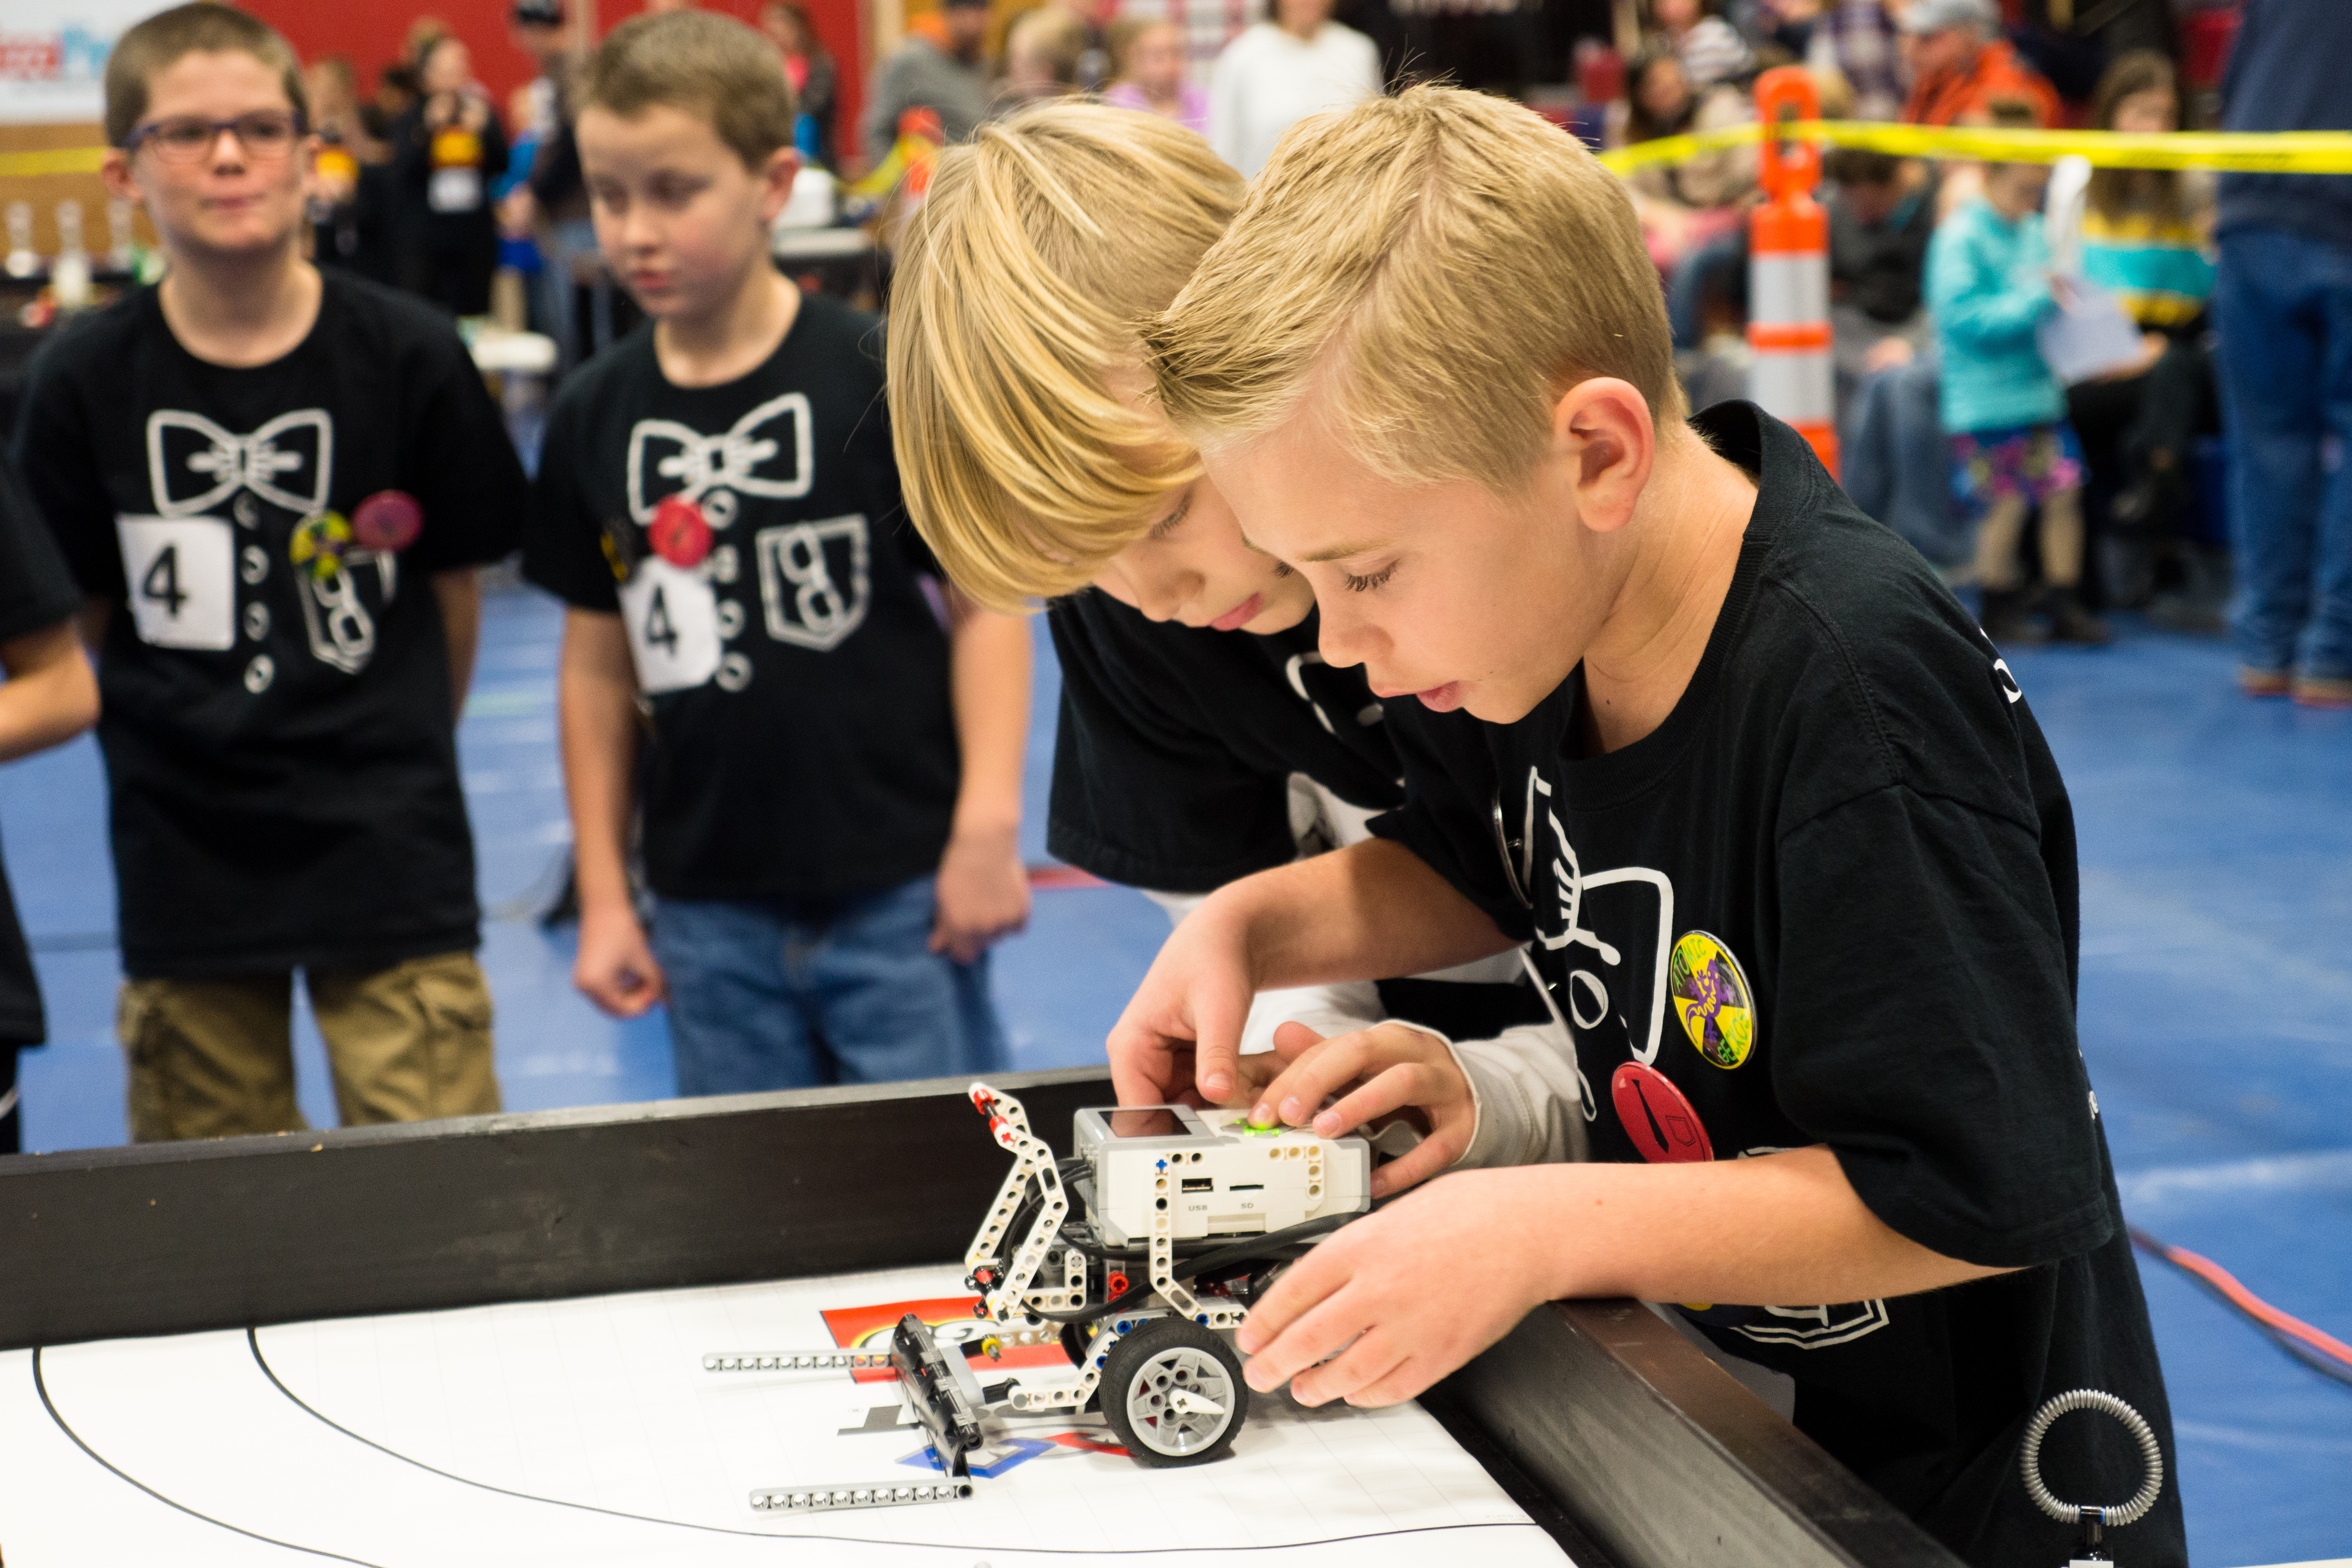 Lego League Robotics Competition Makes Science Technology Fun For